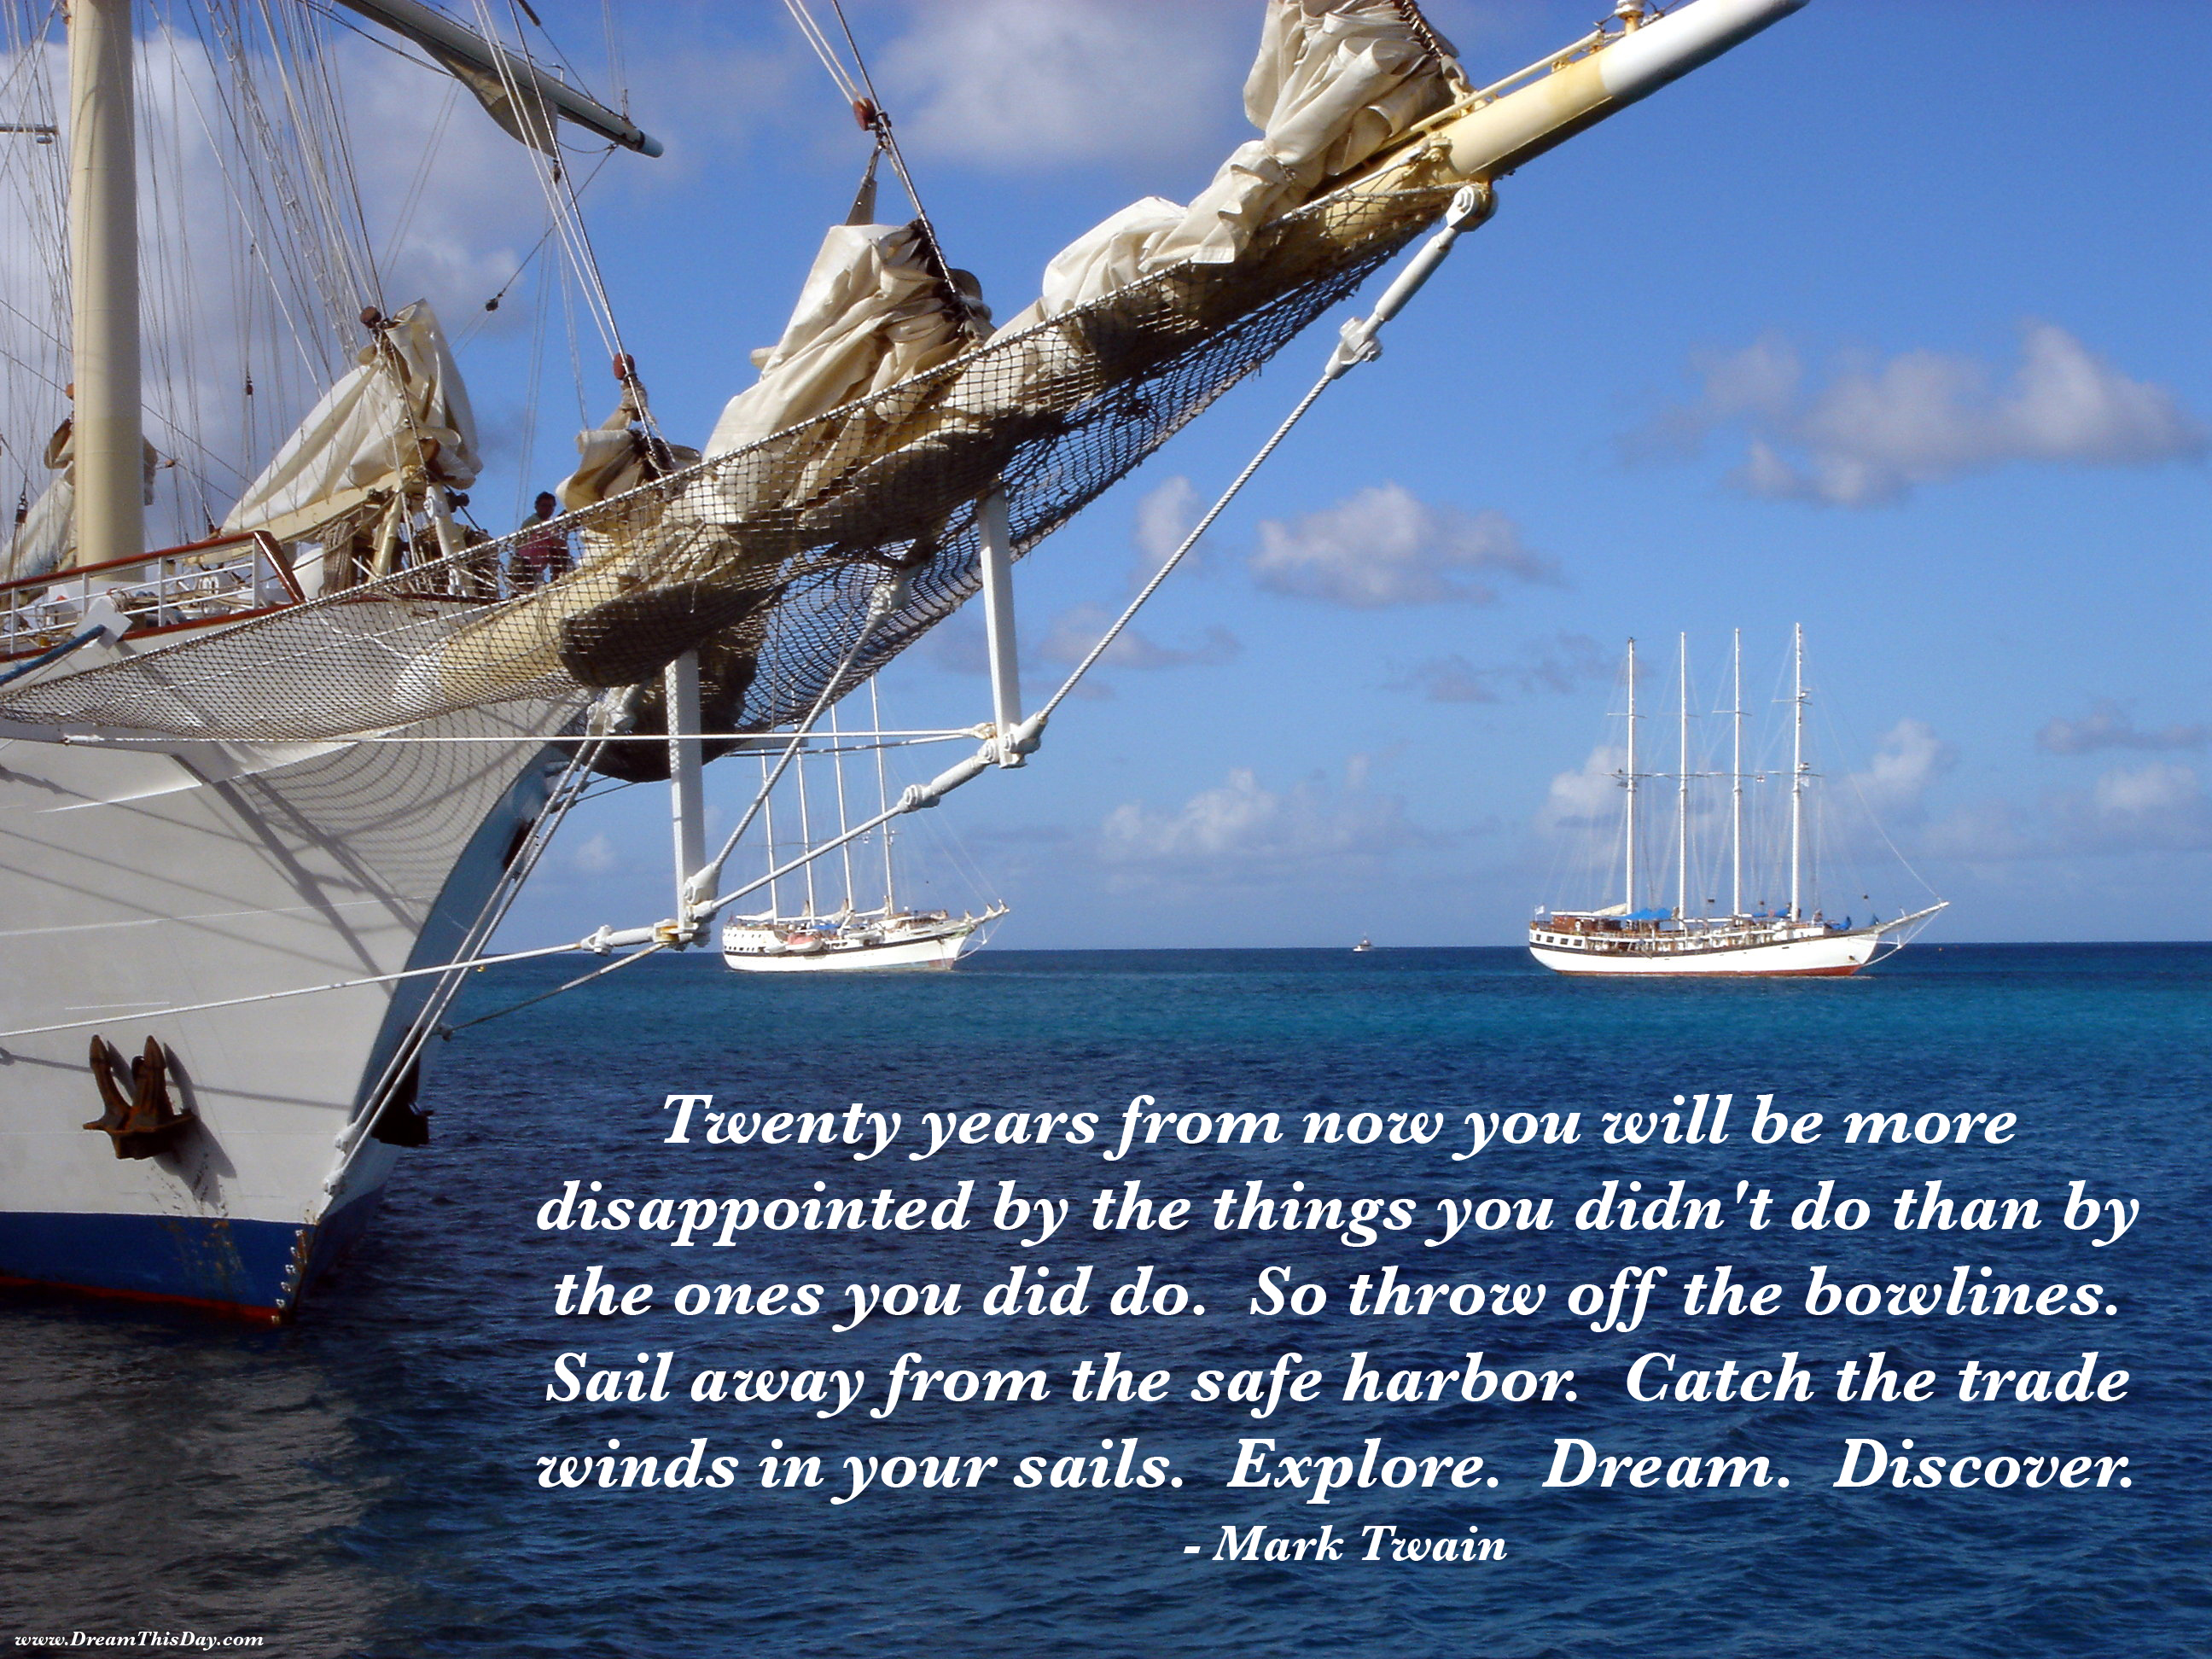 Sailing Quotes Quotesgram: Sailing Quotes About Life. QuotesGram